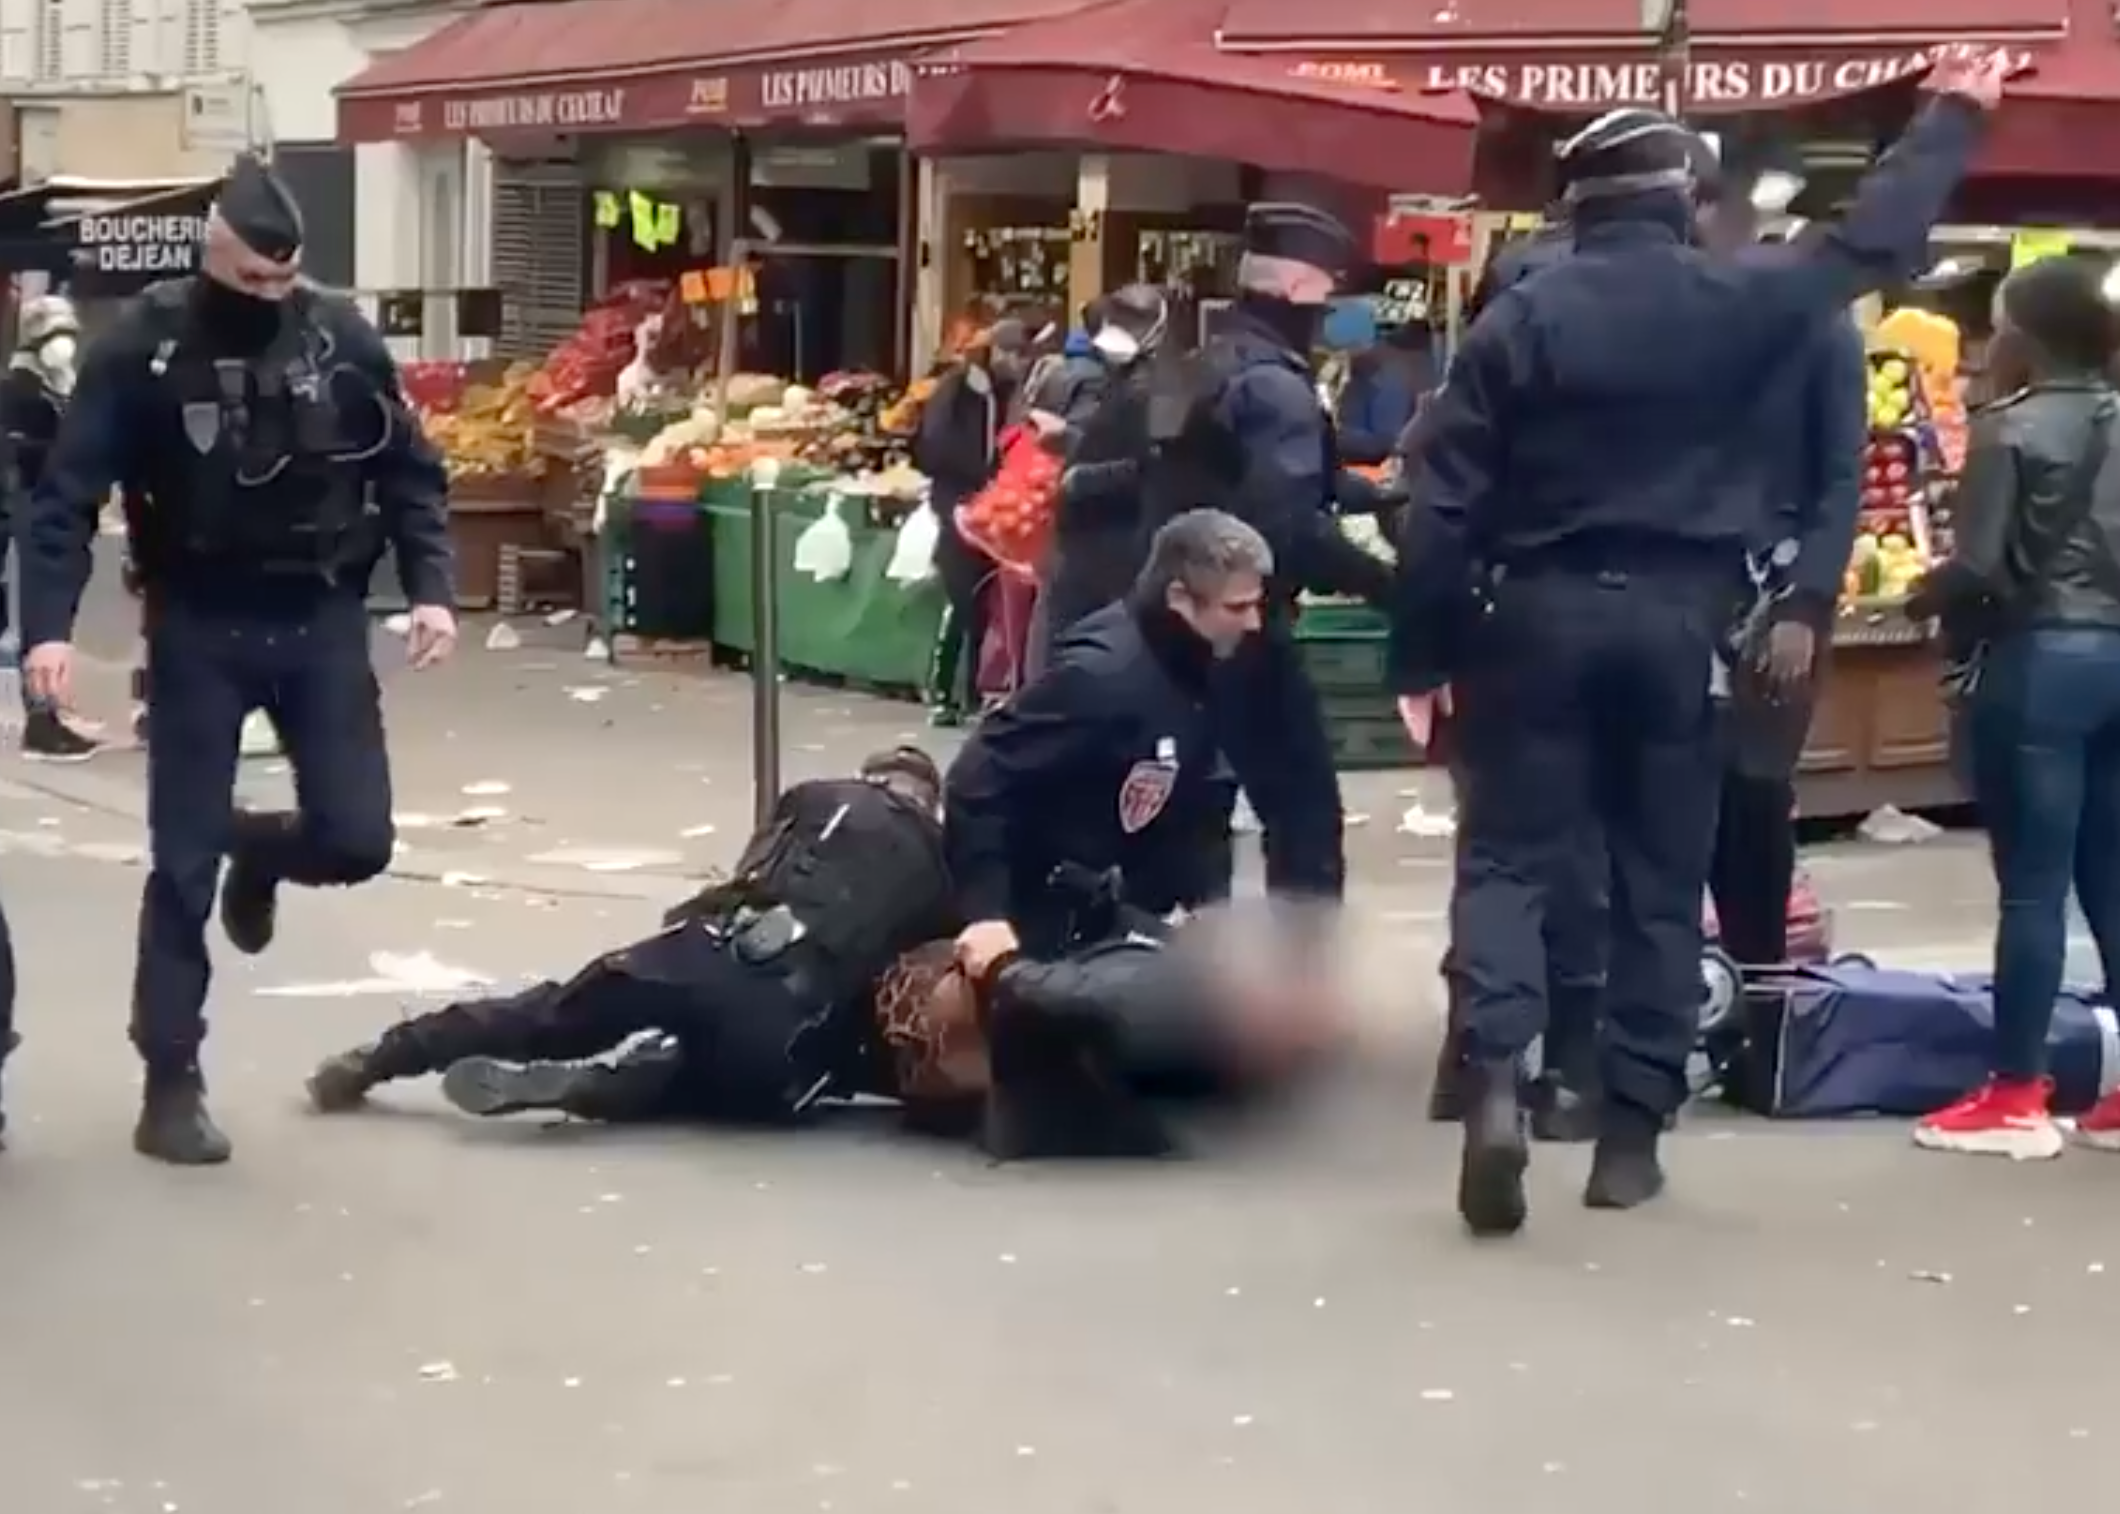 Earlier in the week police were pictured restraining a woman in a Paris street